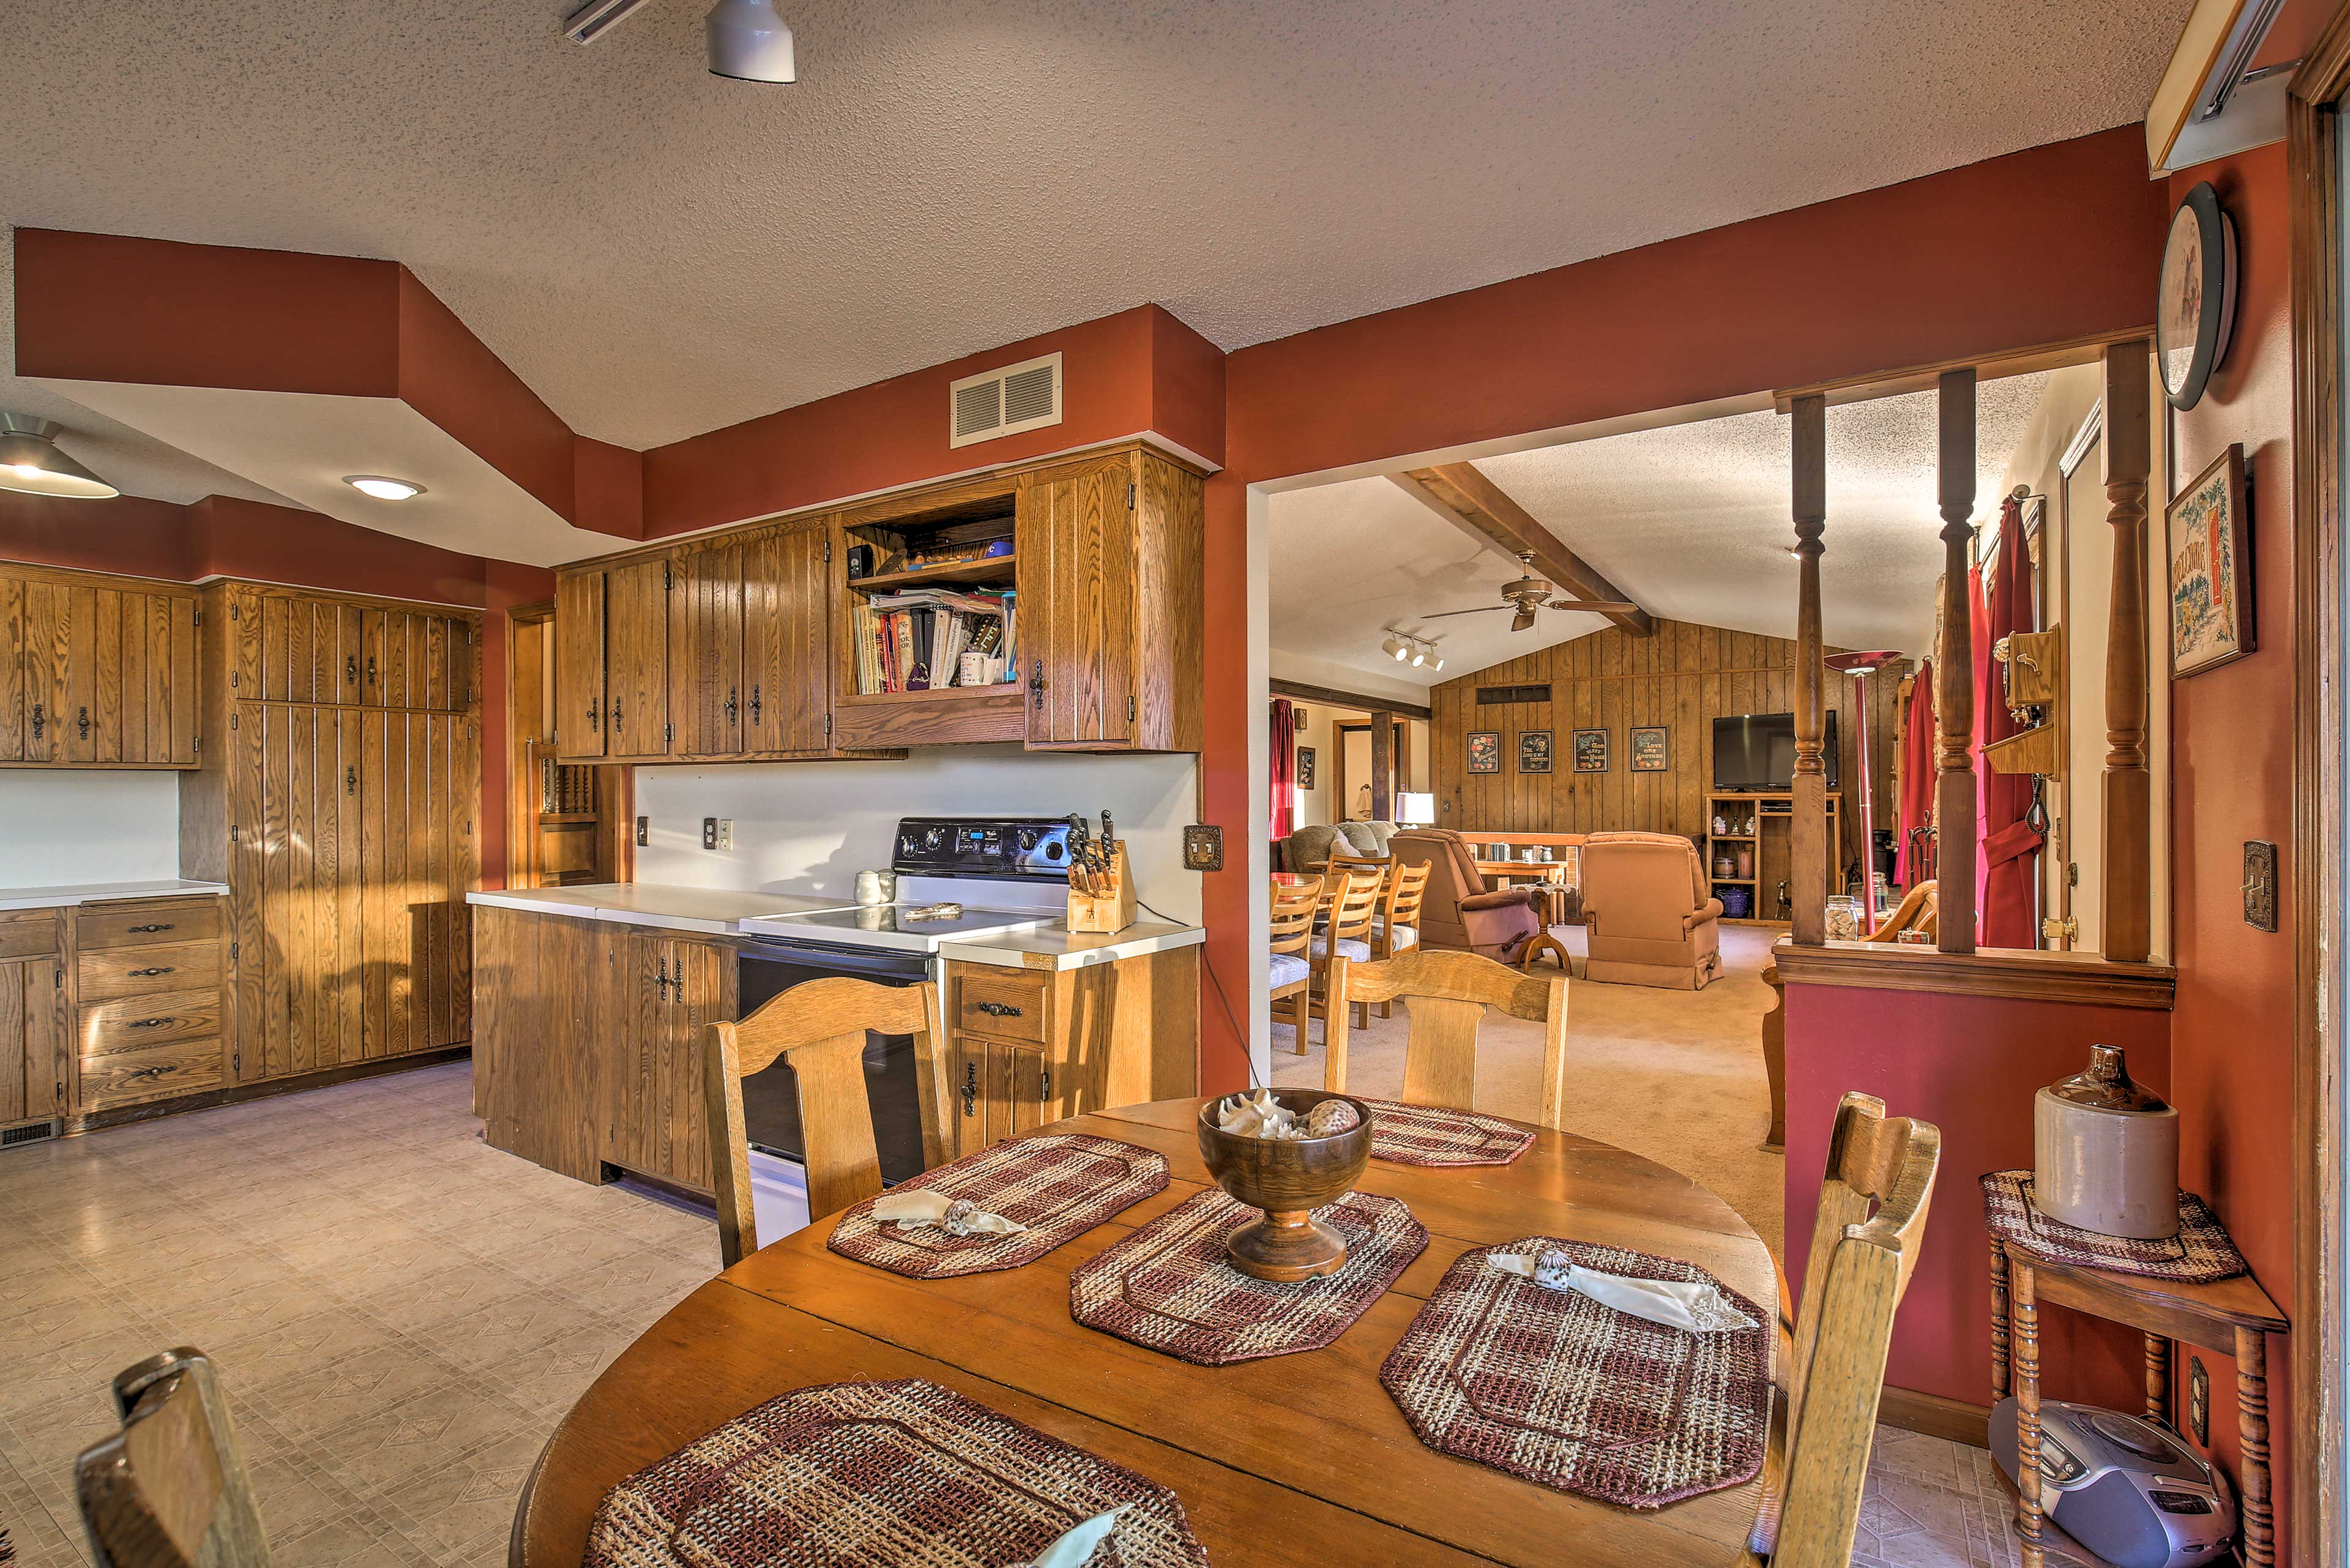 Step into the spacious fully equipped kitchen to prepare your meals.